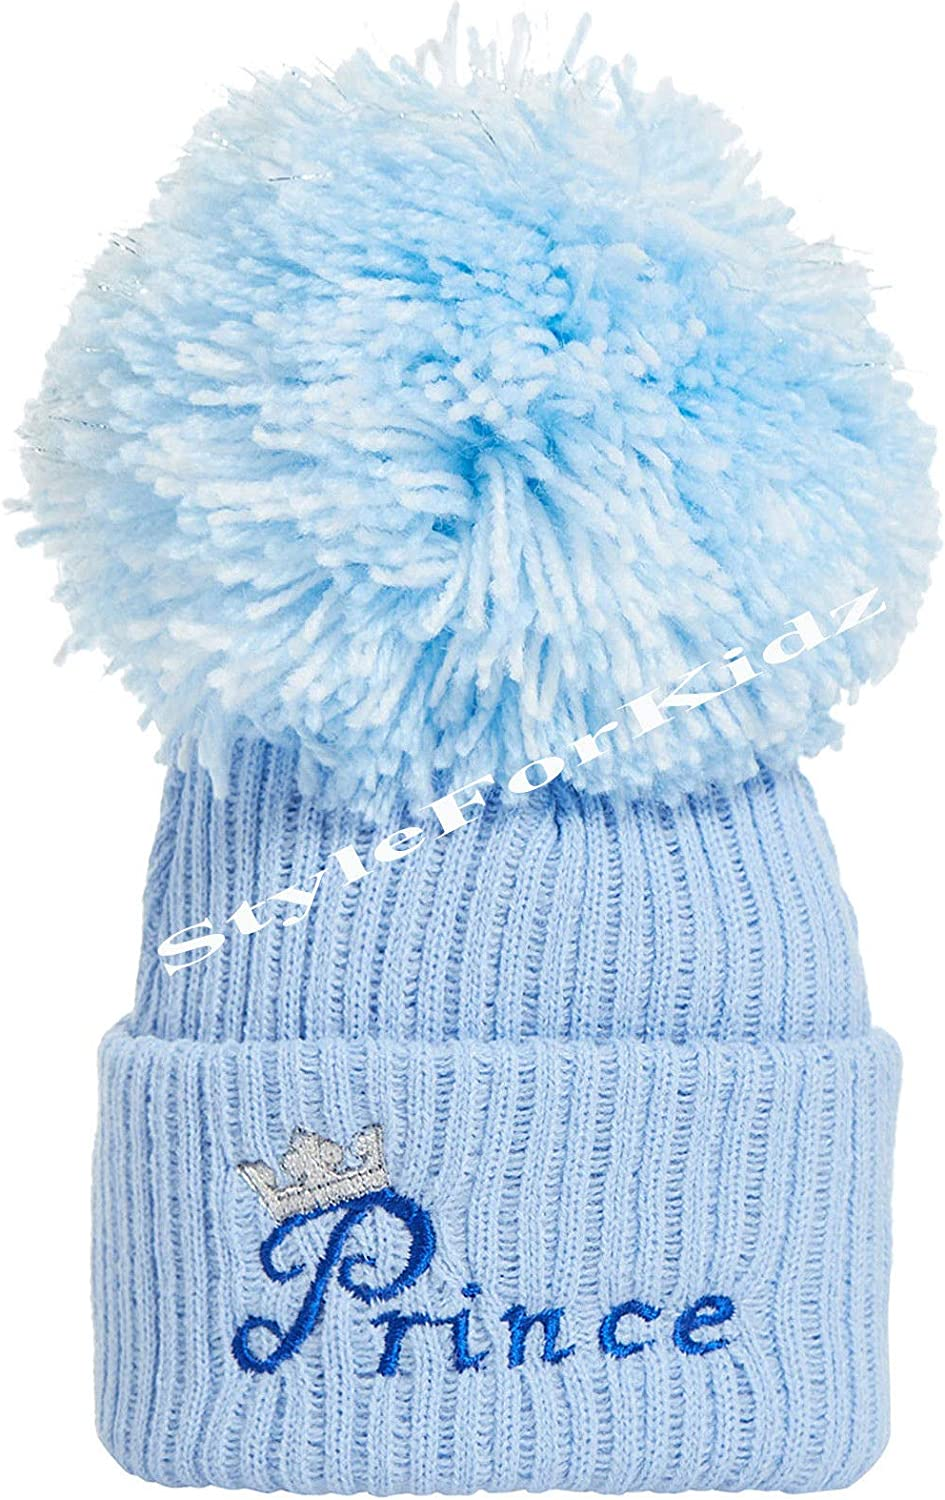 Teeny Buddens Baby Boys Girls Unisex Embroidered Personalised Bobble Pompom hat Newborn-12 Months